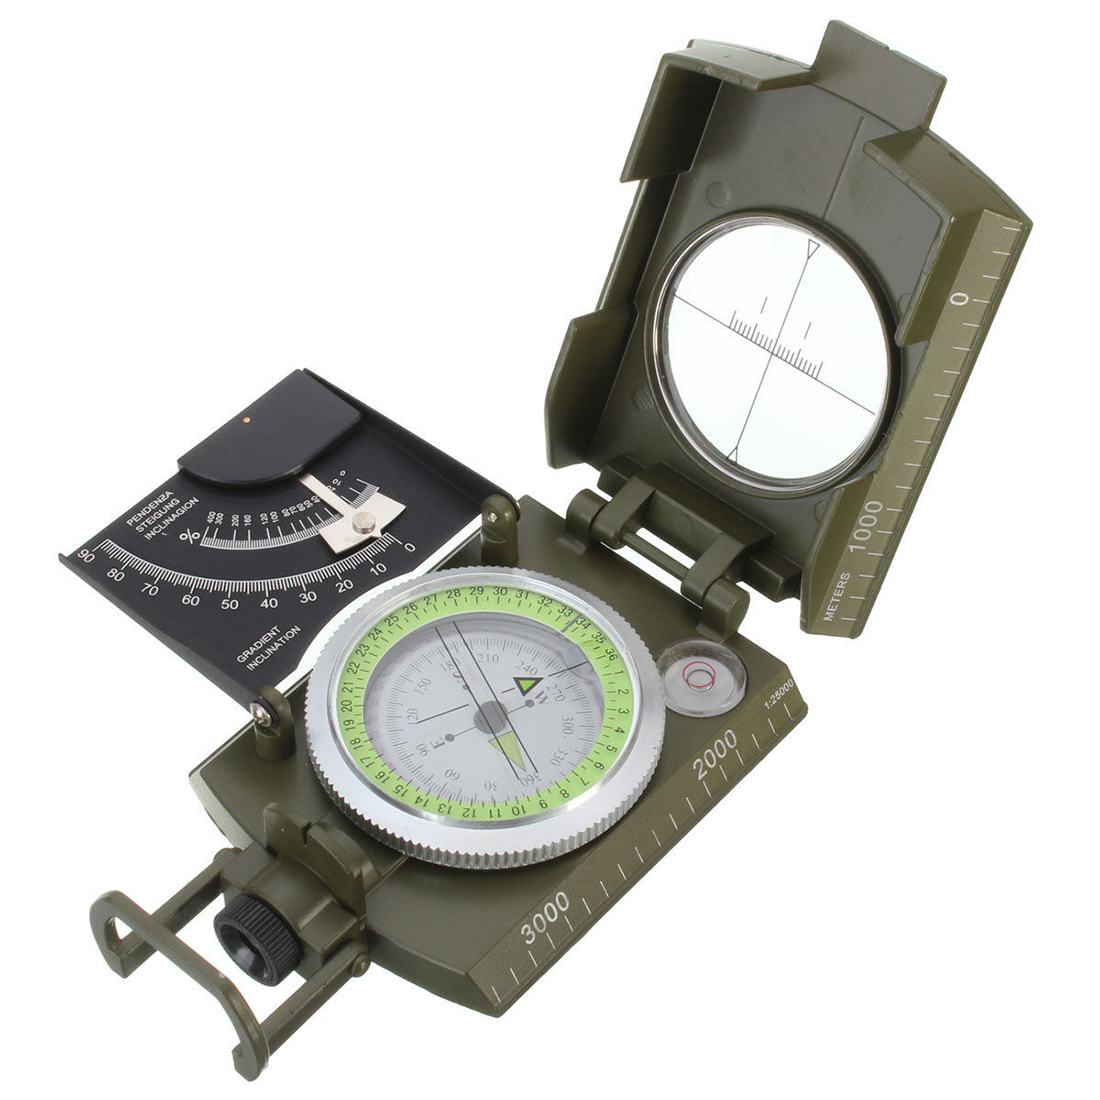 2018 New Professional Military Army Metal Sighting Compass clinometer Camping eyeskey professional aluminum sighting compass clinometer slope height measurement map compass waterproof